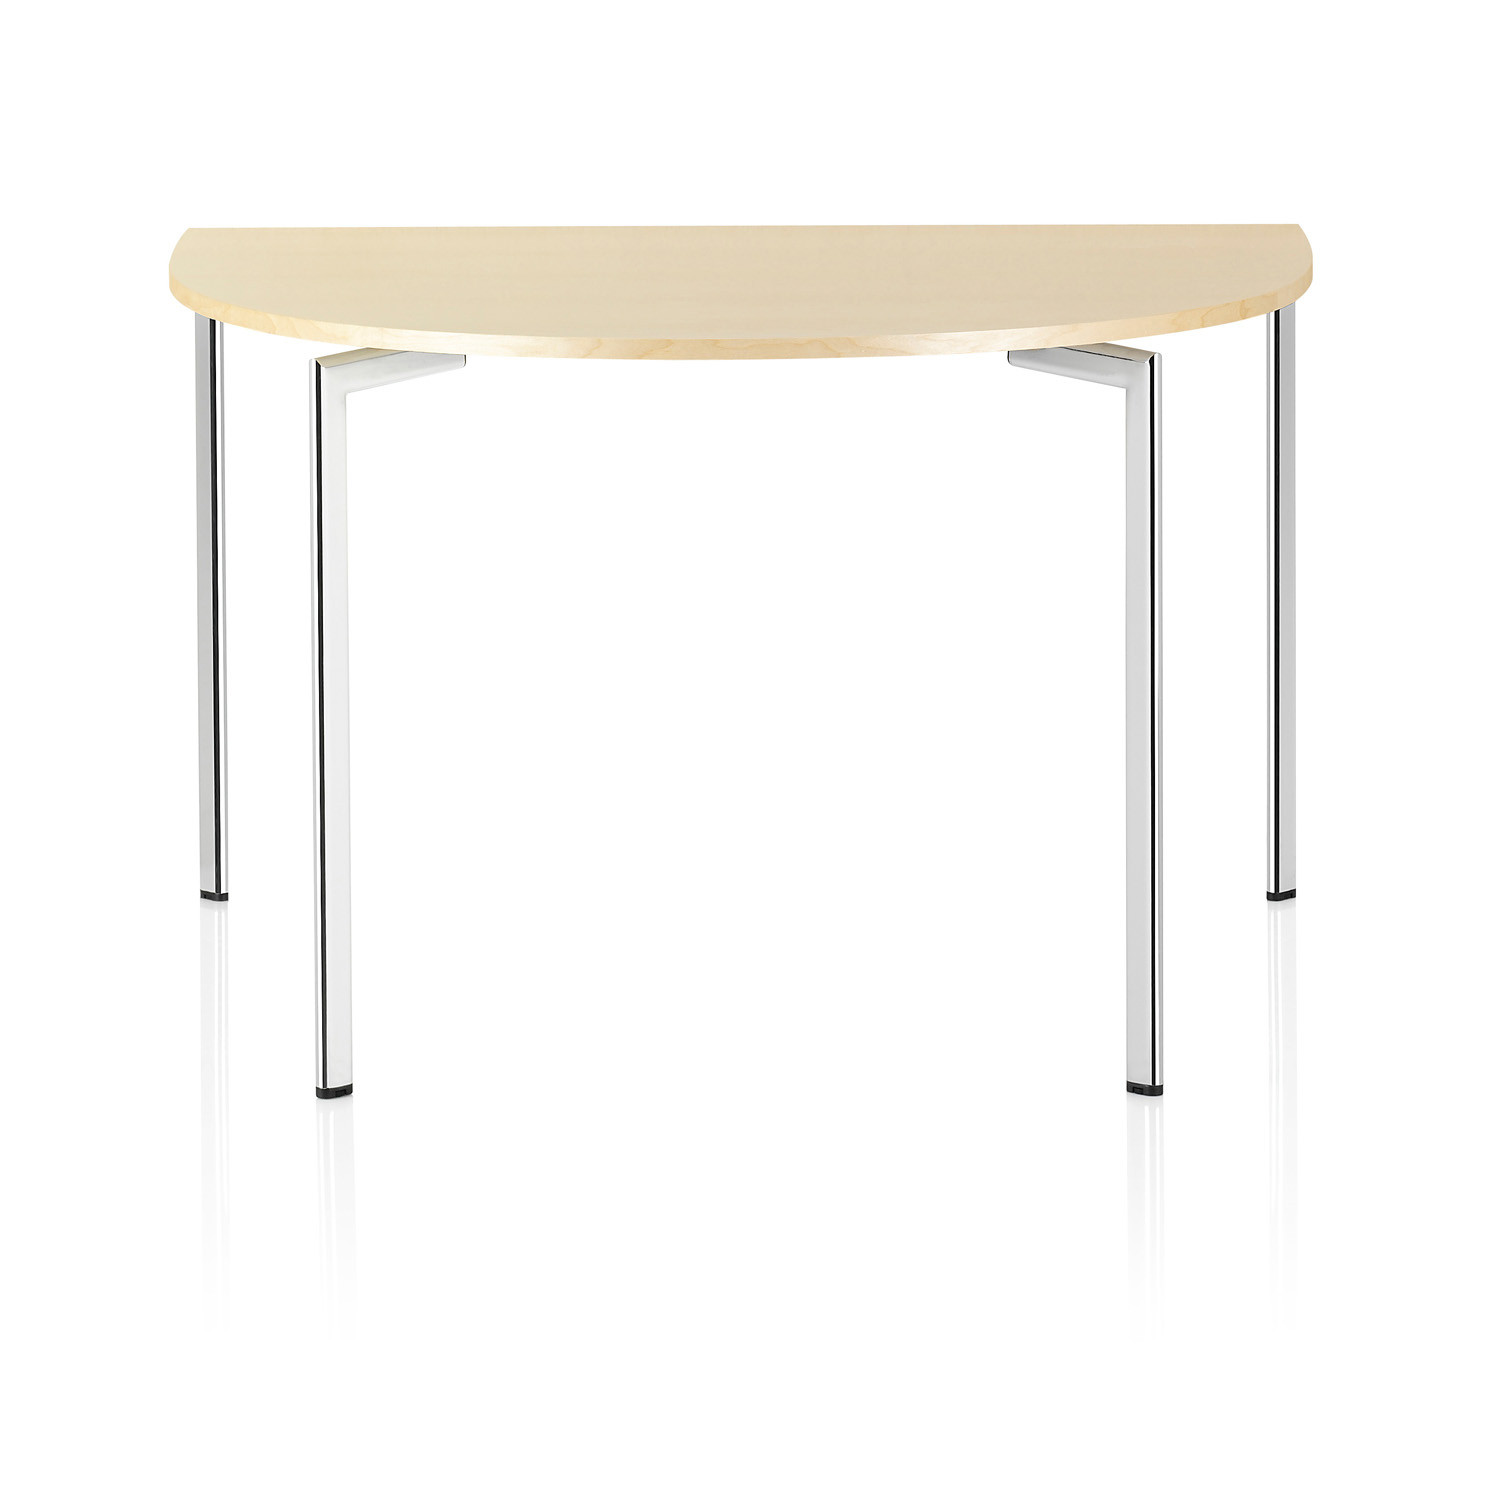 Campus half oval conference table